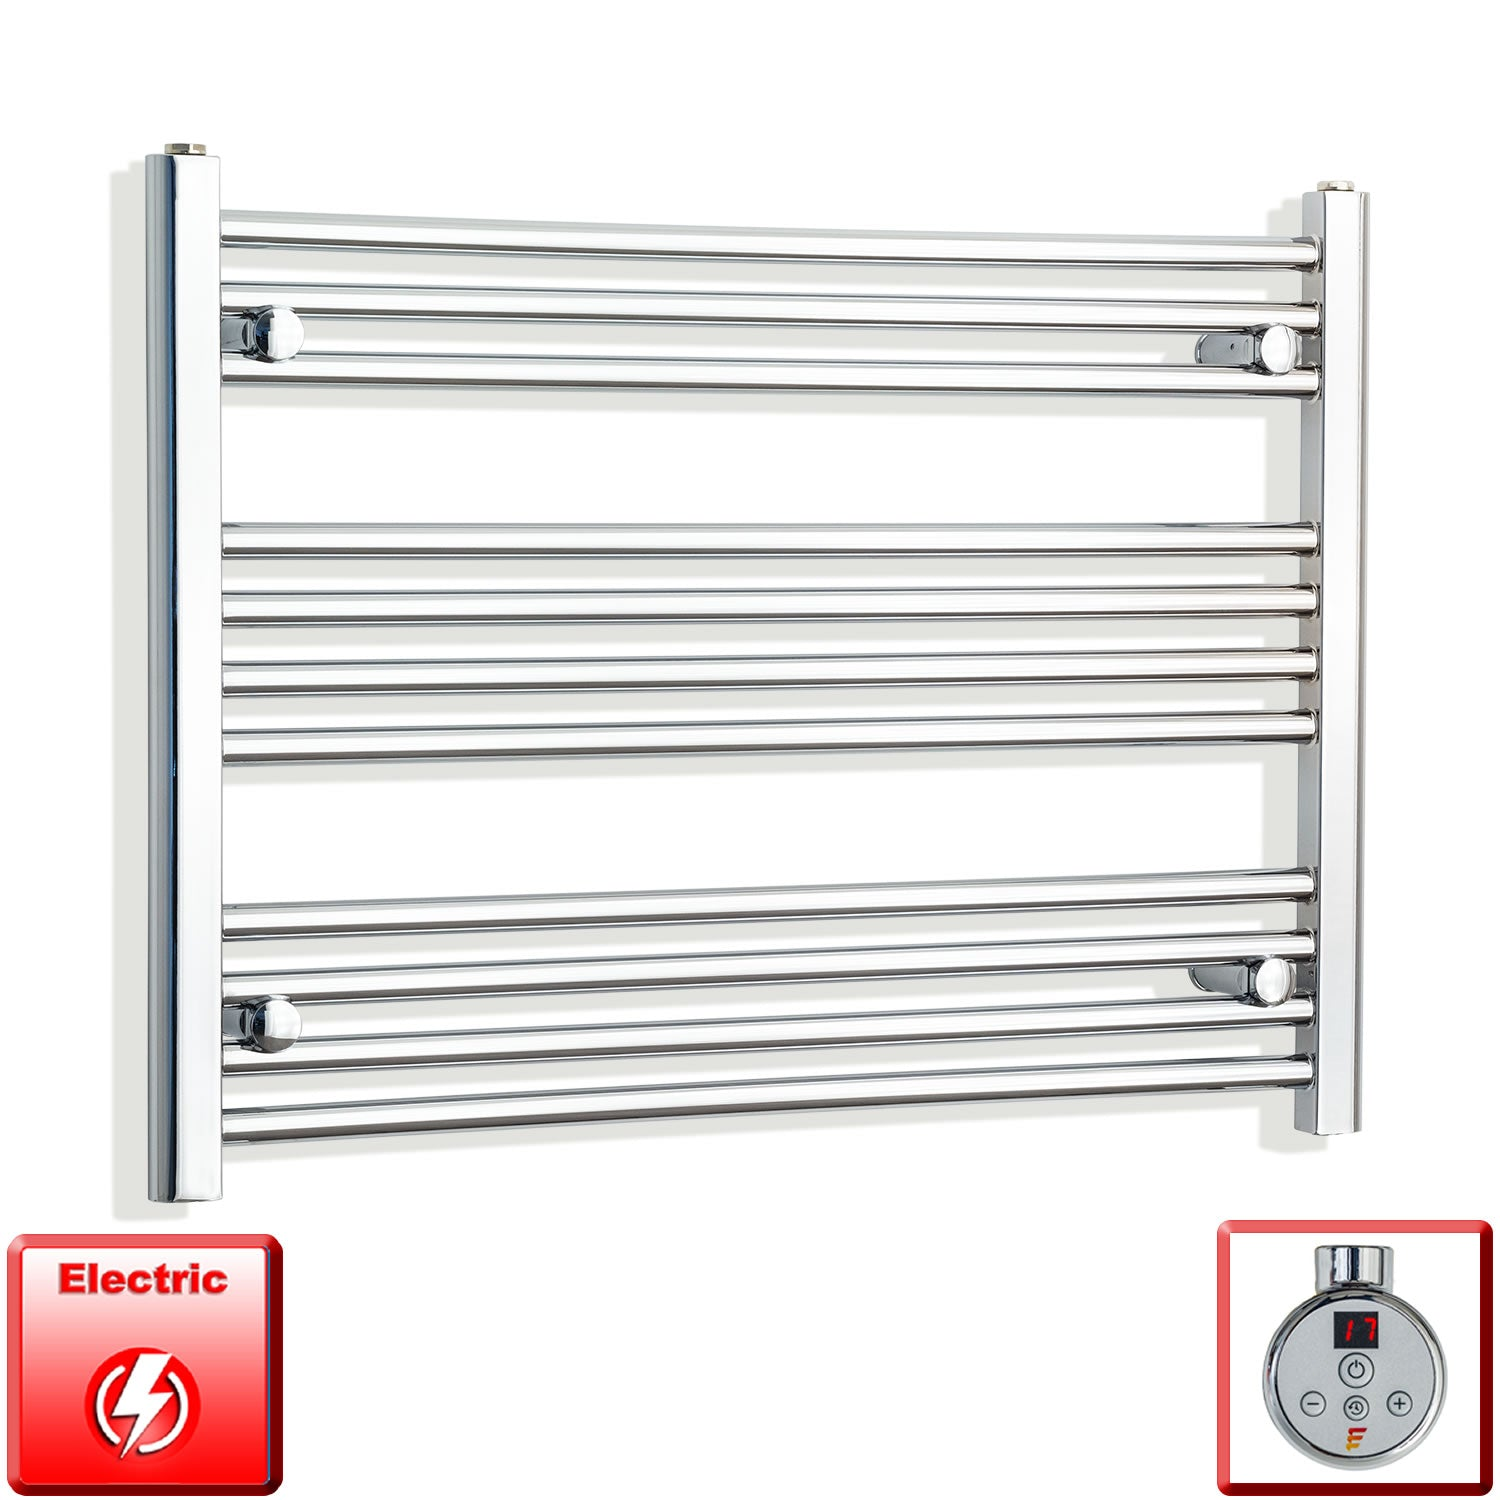 900mm Wide 600mm High Flat Chrome Pre-Filled Electric Heated Towel Rail Radiator HTR